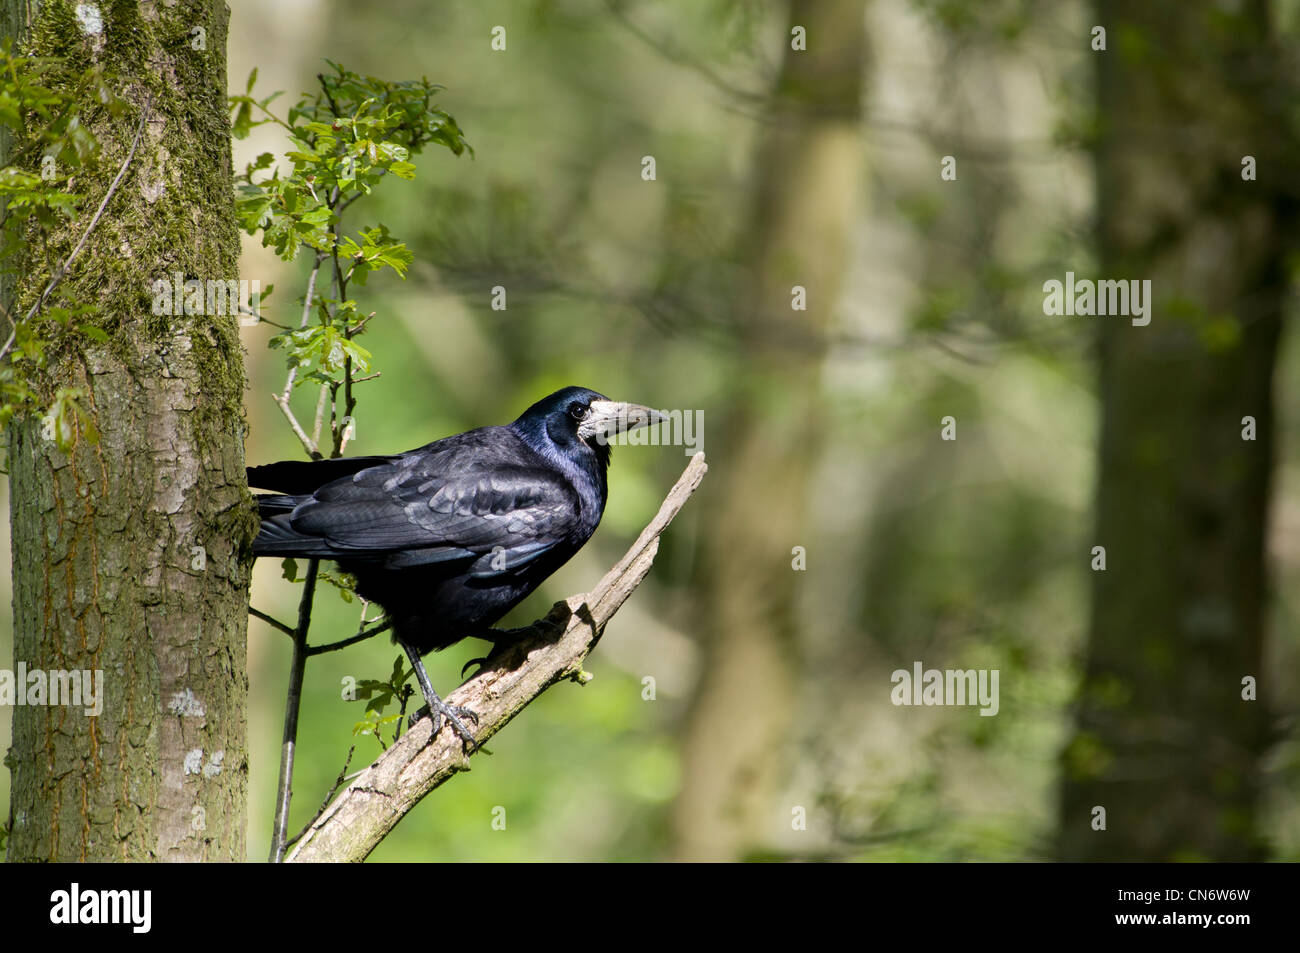 A rook (Corvus frugilegus) perched in a tree in woodland at Morpeth, Northumberland. May. - Stock Image